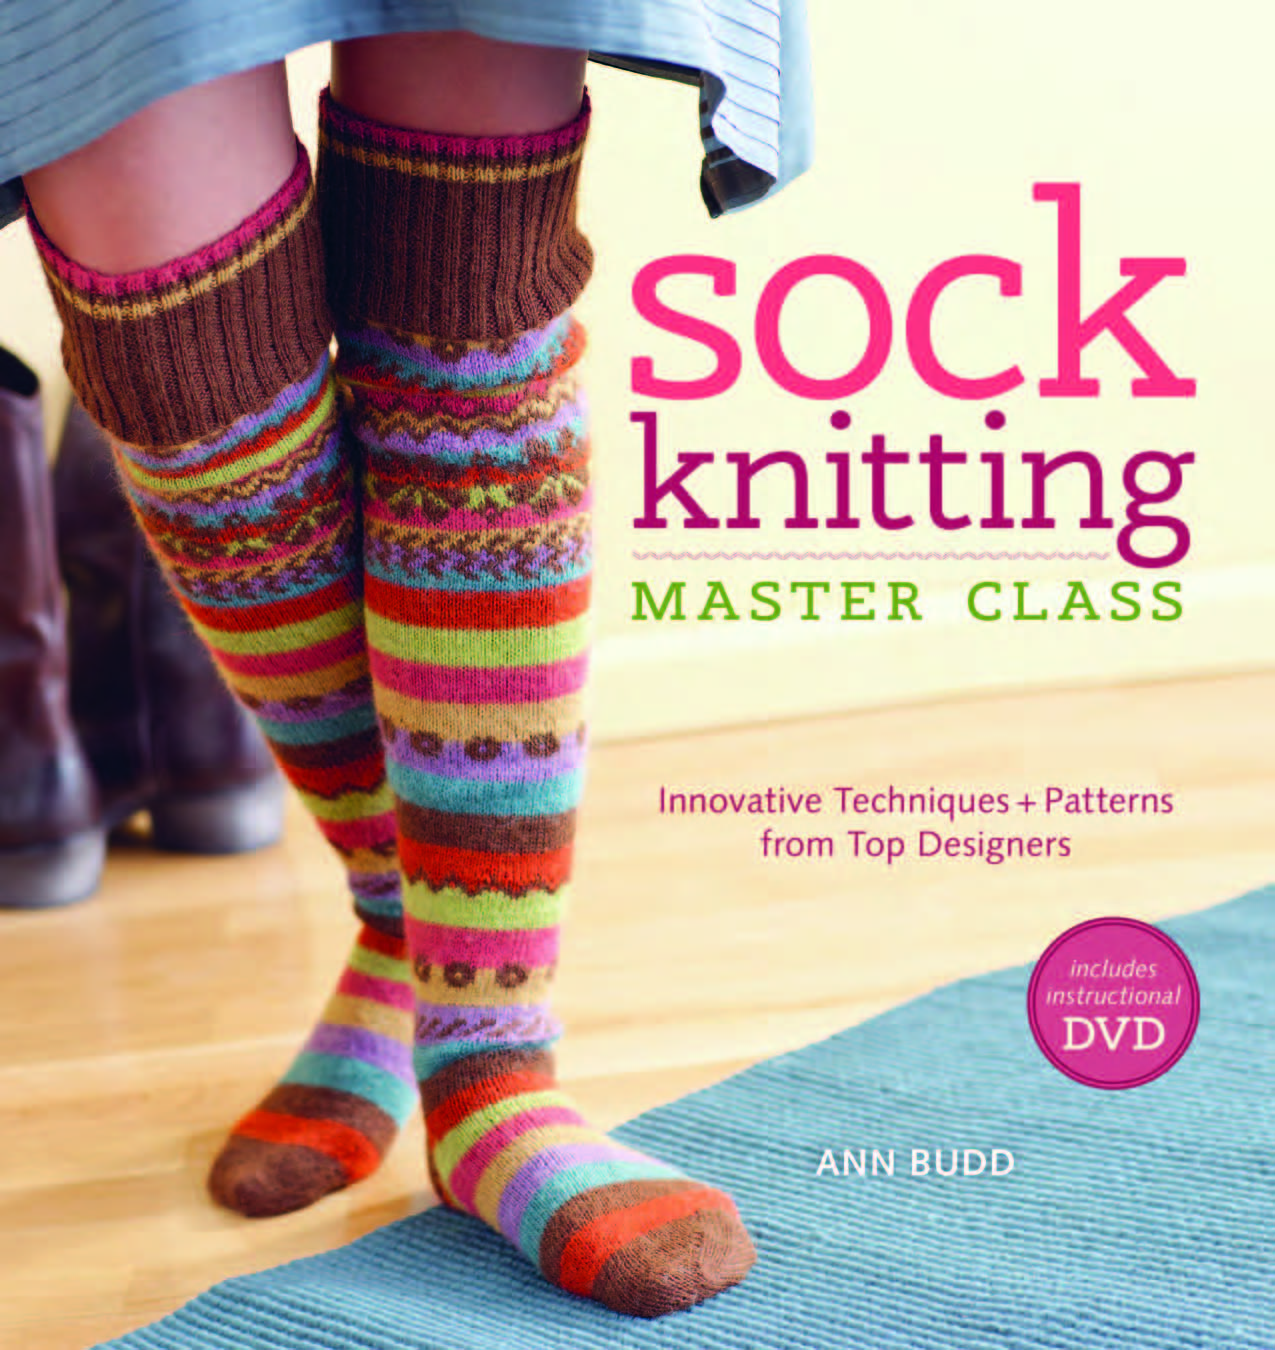 Knitting Classes : Too Good to be True